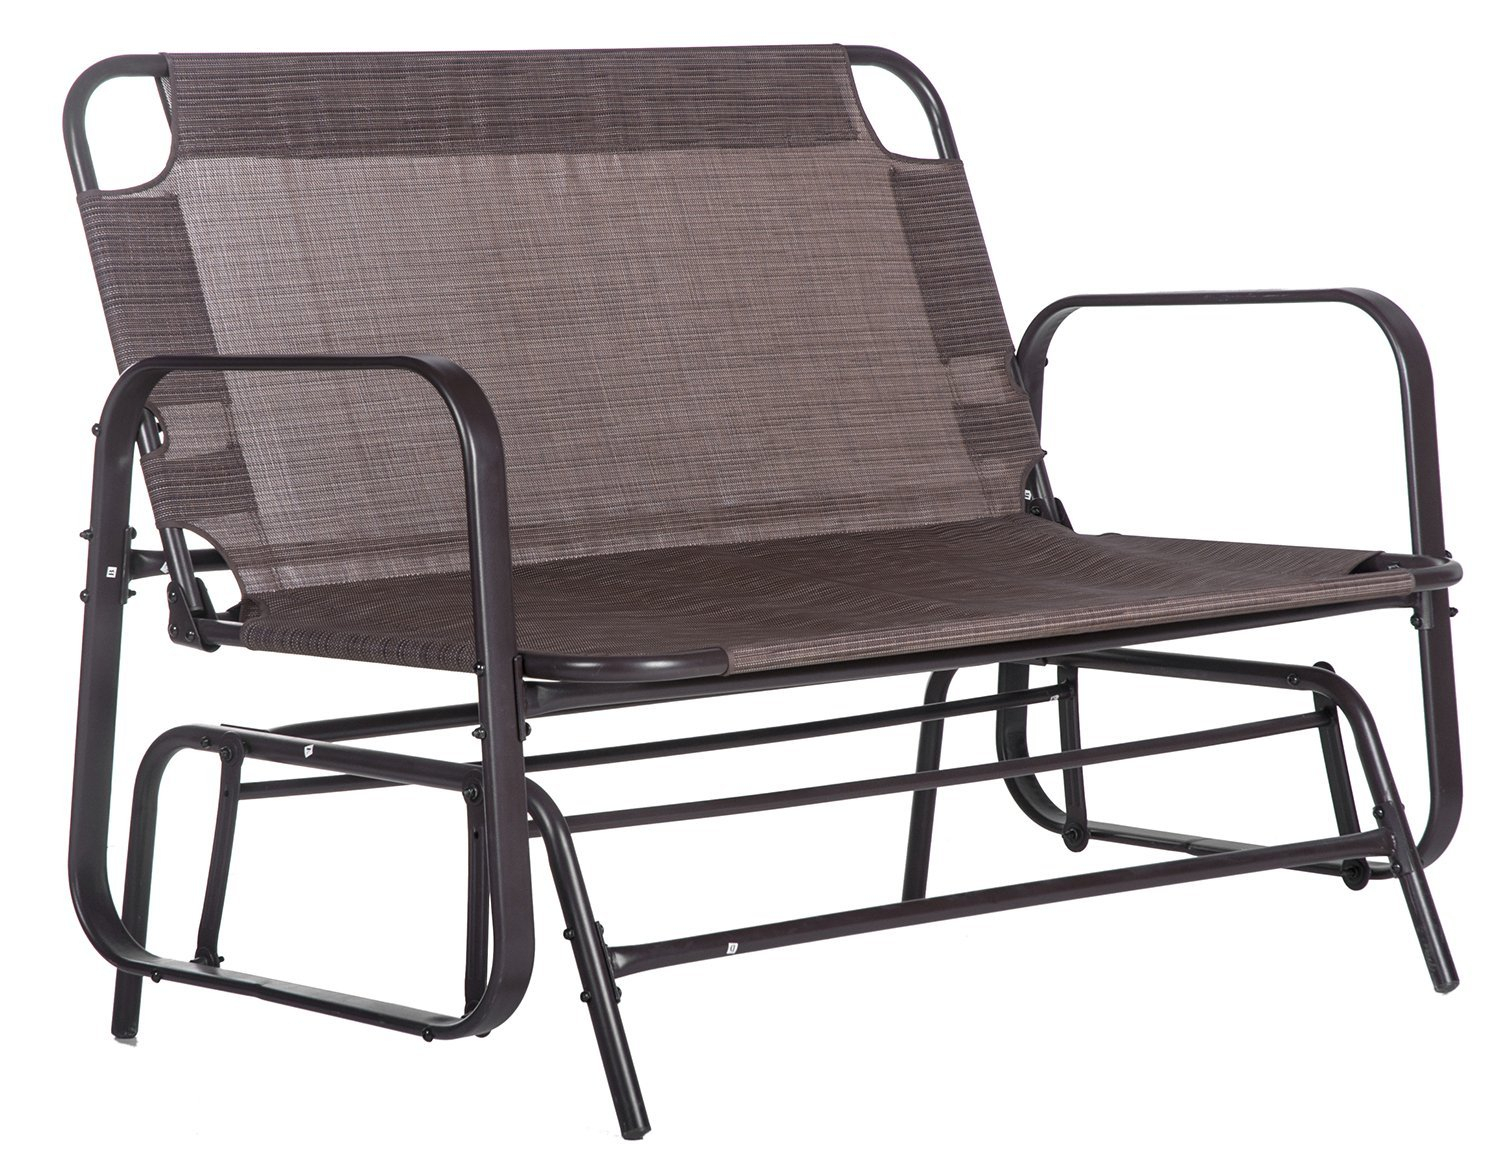 Buy Merax Patio Loveseat Glider Rocking Chair Garden Outdoor Throughout Loveseat Glider Benches With Cushions (View 5 of 25)